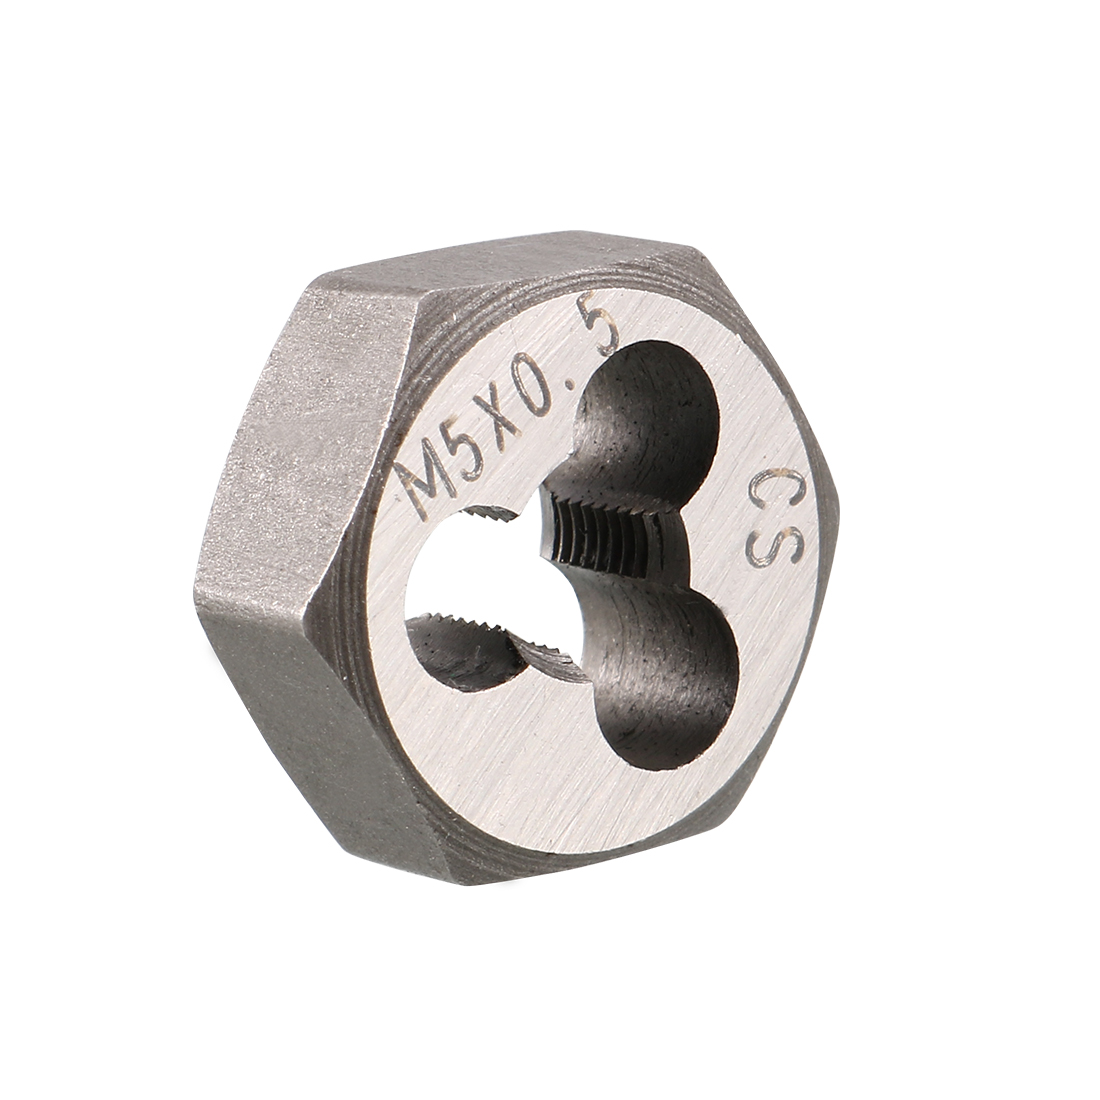 M5 x 0.5 Pitch Carbon Steel Metric Hexagon Taper Pipe Hex Rethreading Die